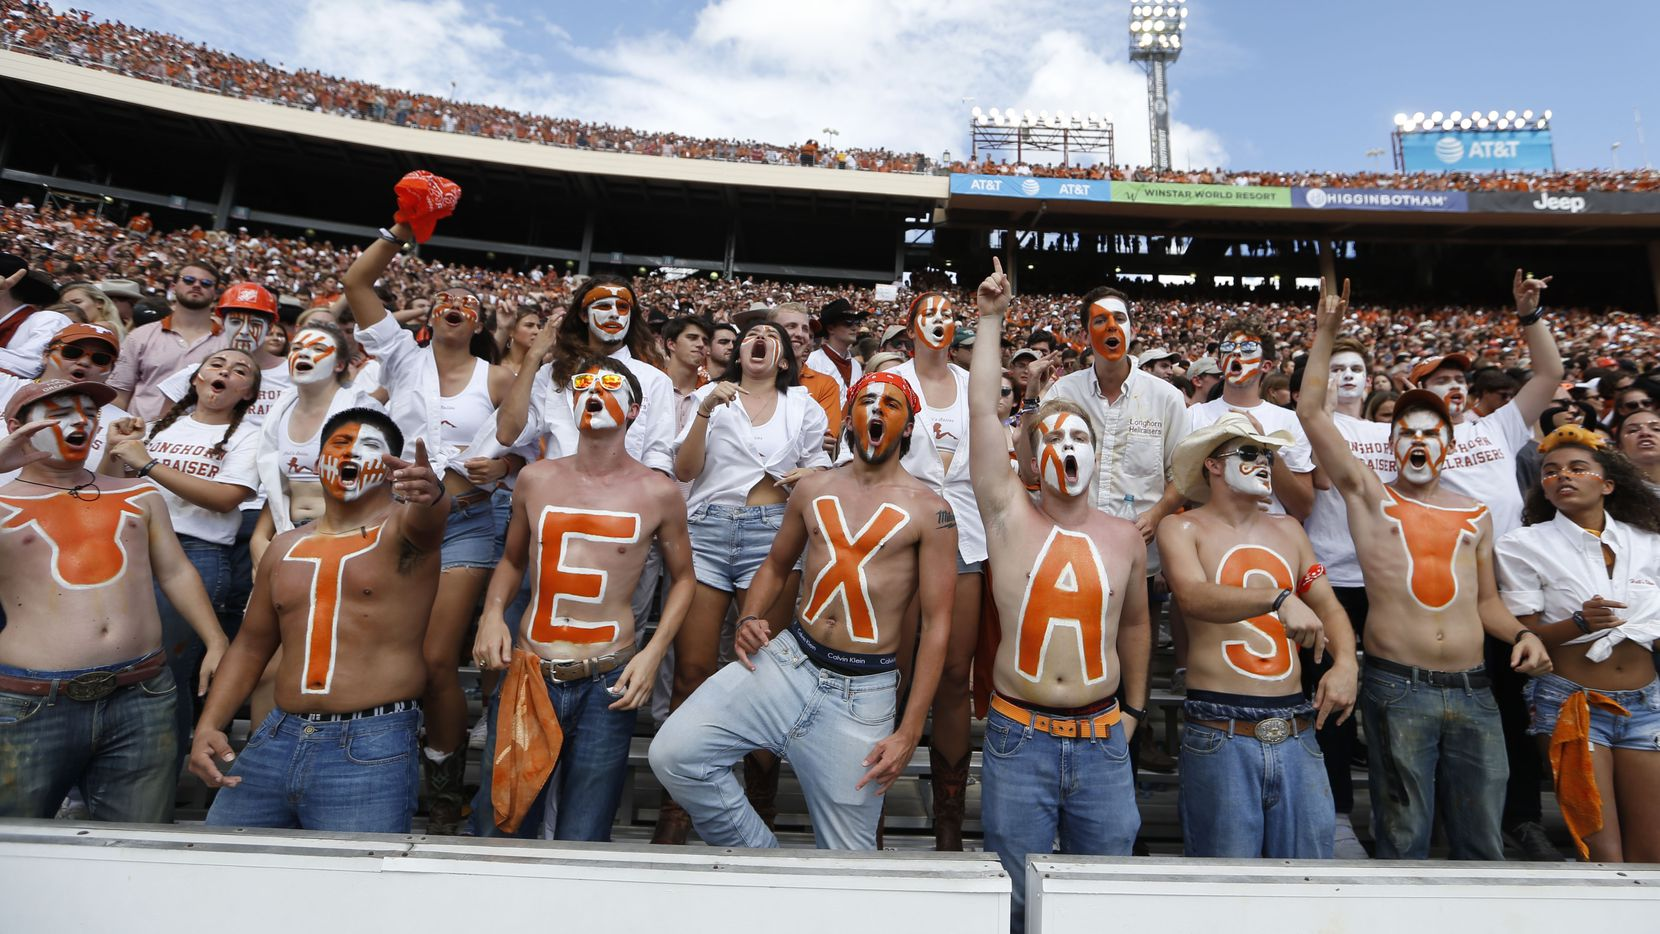 Texas Longhorns fans cheer for their team during the second half of play at the Cotton Bowl in Dallas on Saturday, October 6, 2018. Texas Longhorns defeated Oklahoma Sooners 48-45. (Vernon Bryant/The Dallas Morning News)